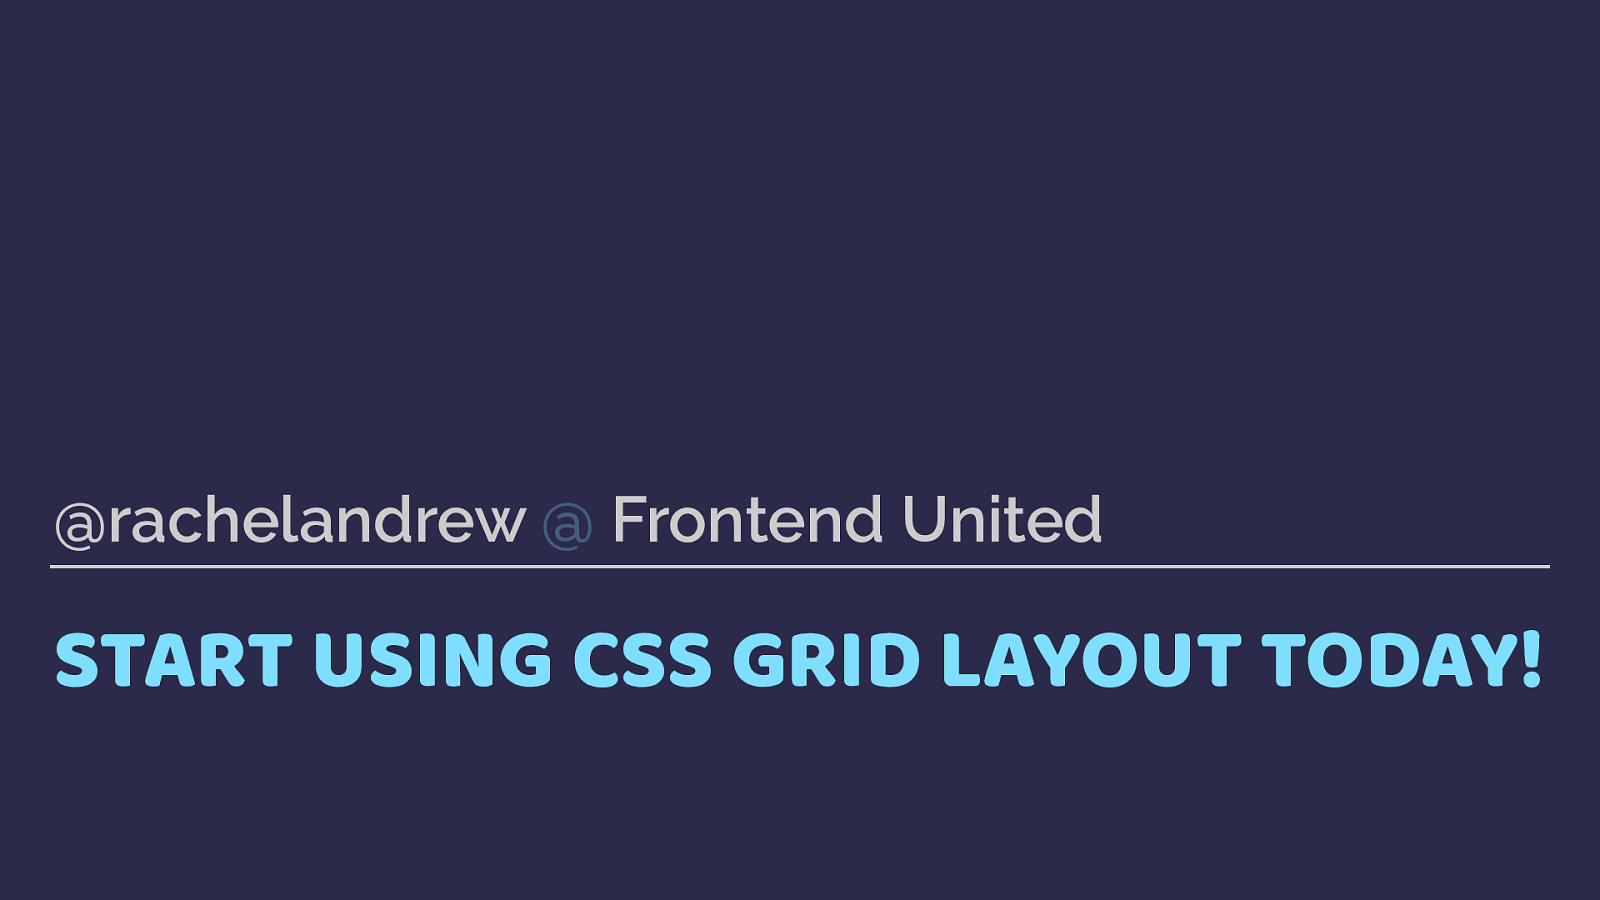 Start Using CSS Grid Layout Today